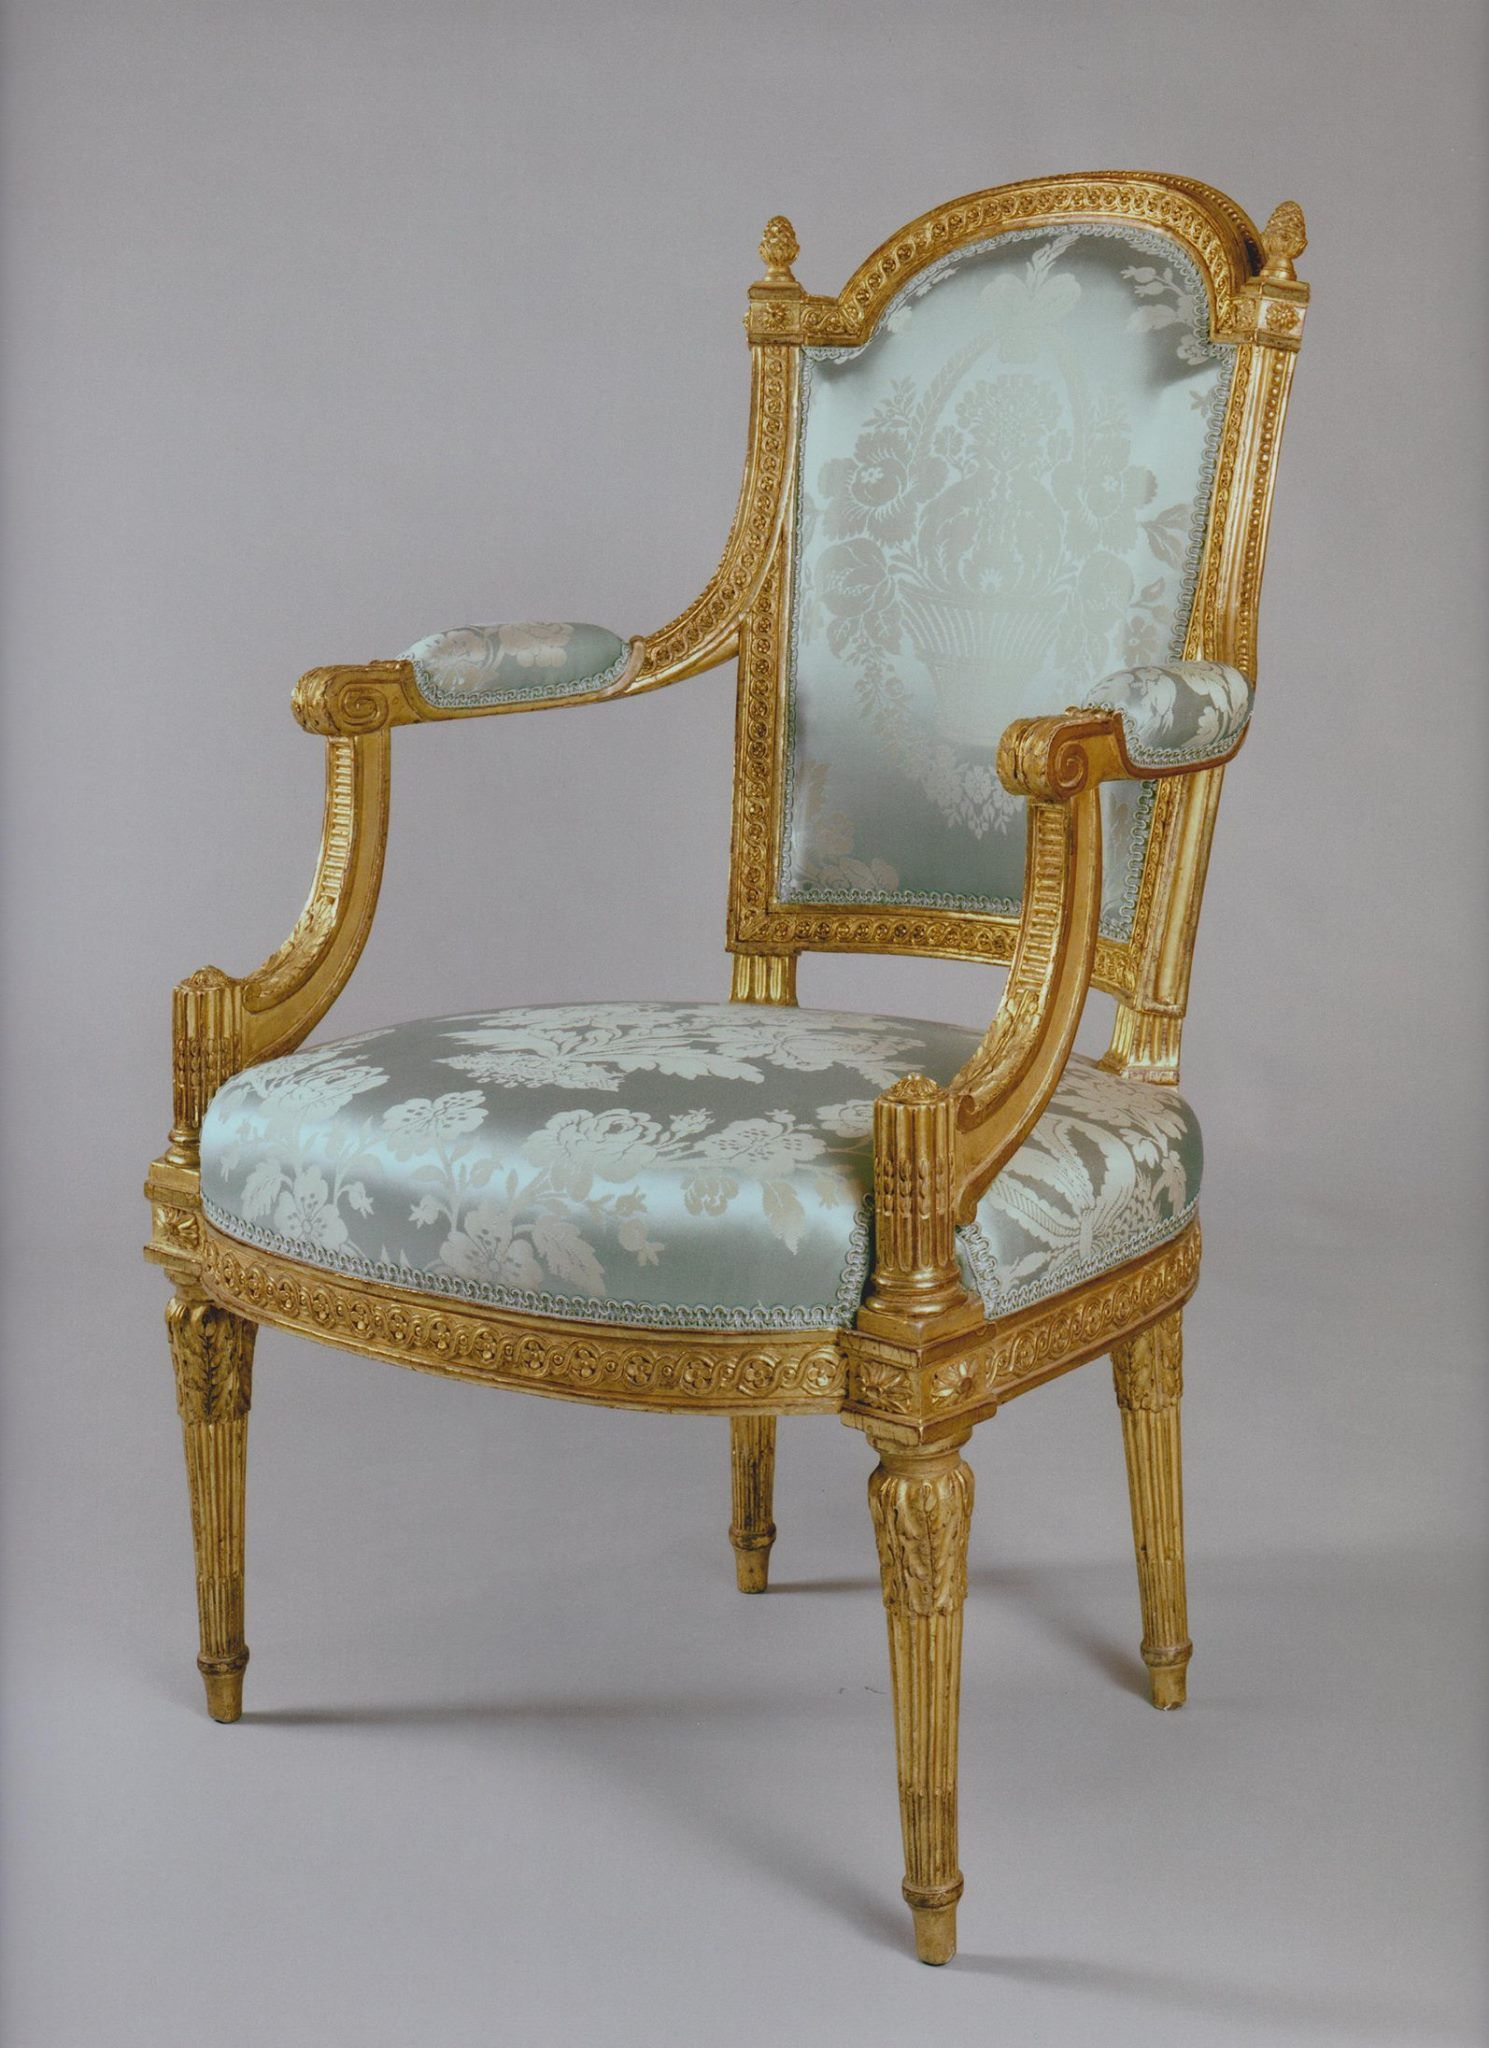 A set of Louis XVI chairs prising two chairs and two armchairs